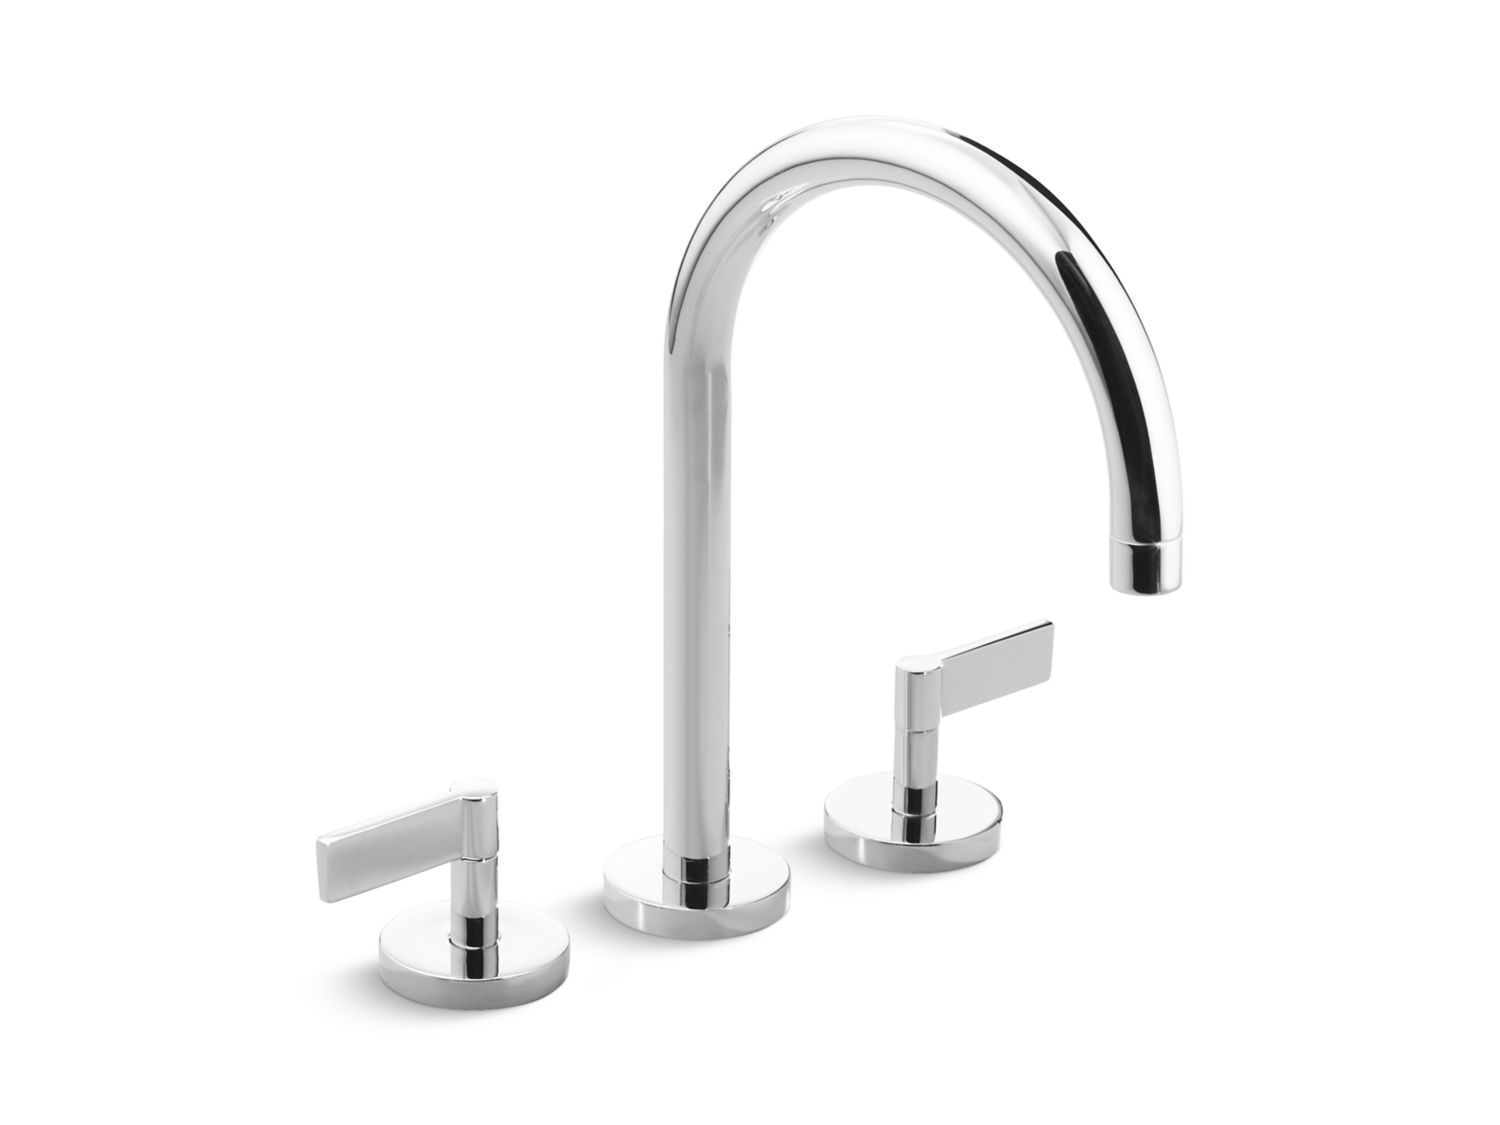 bath lav gallery at decoration ideas ish the faucets quincy faucet bridge kallista lavish kitchen available reviews